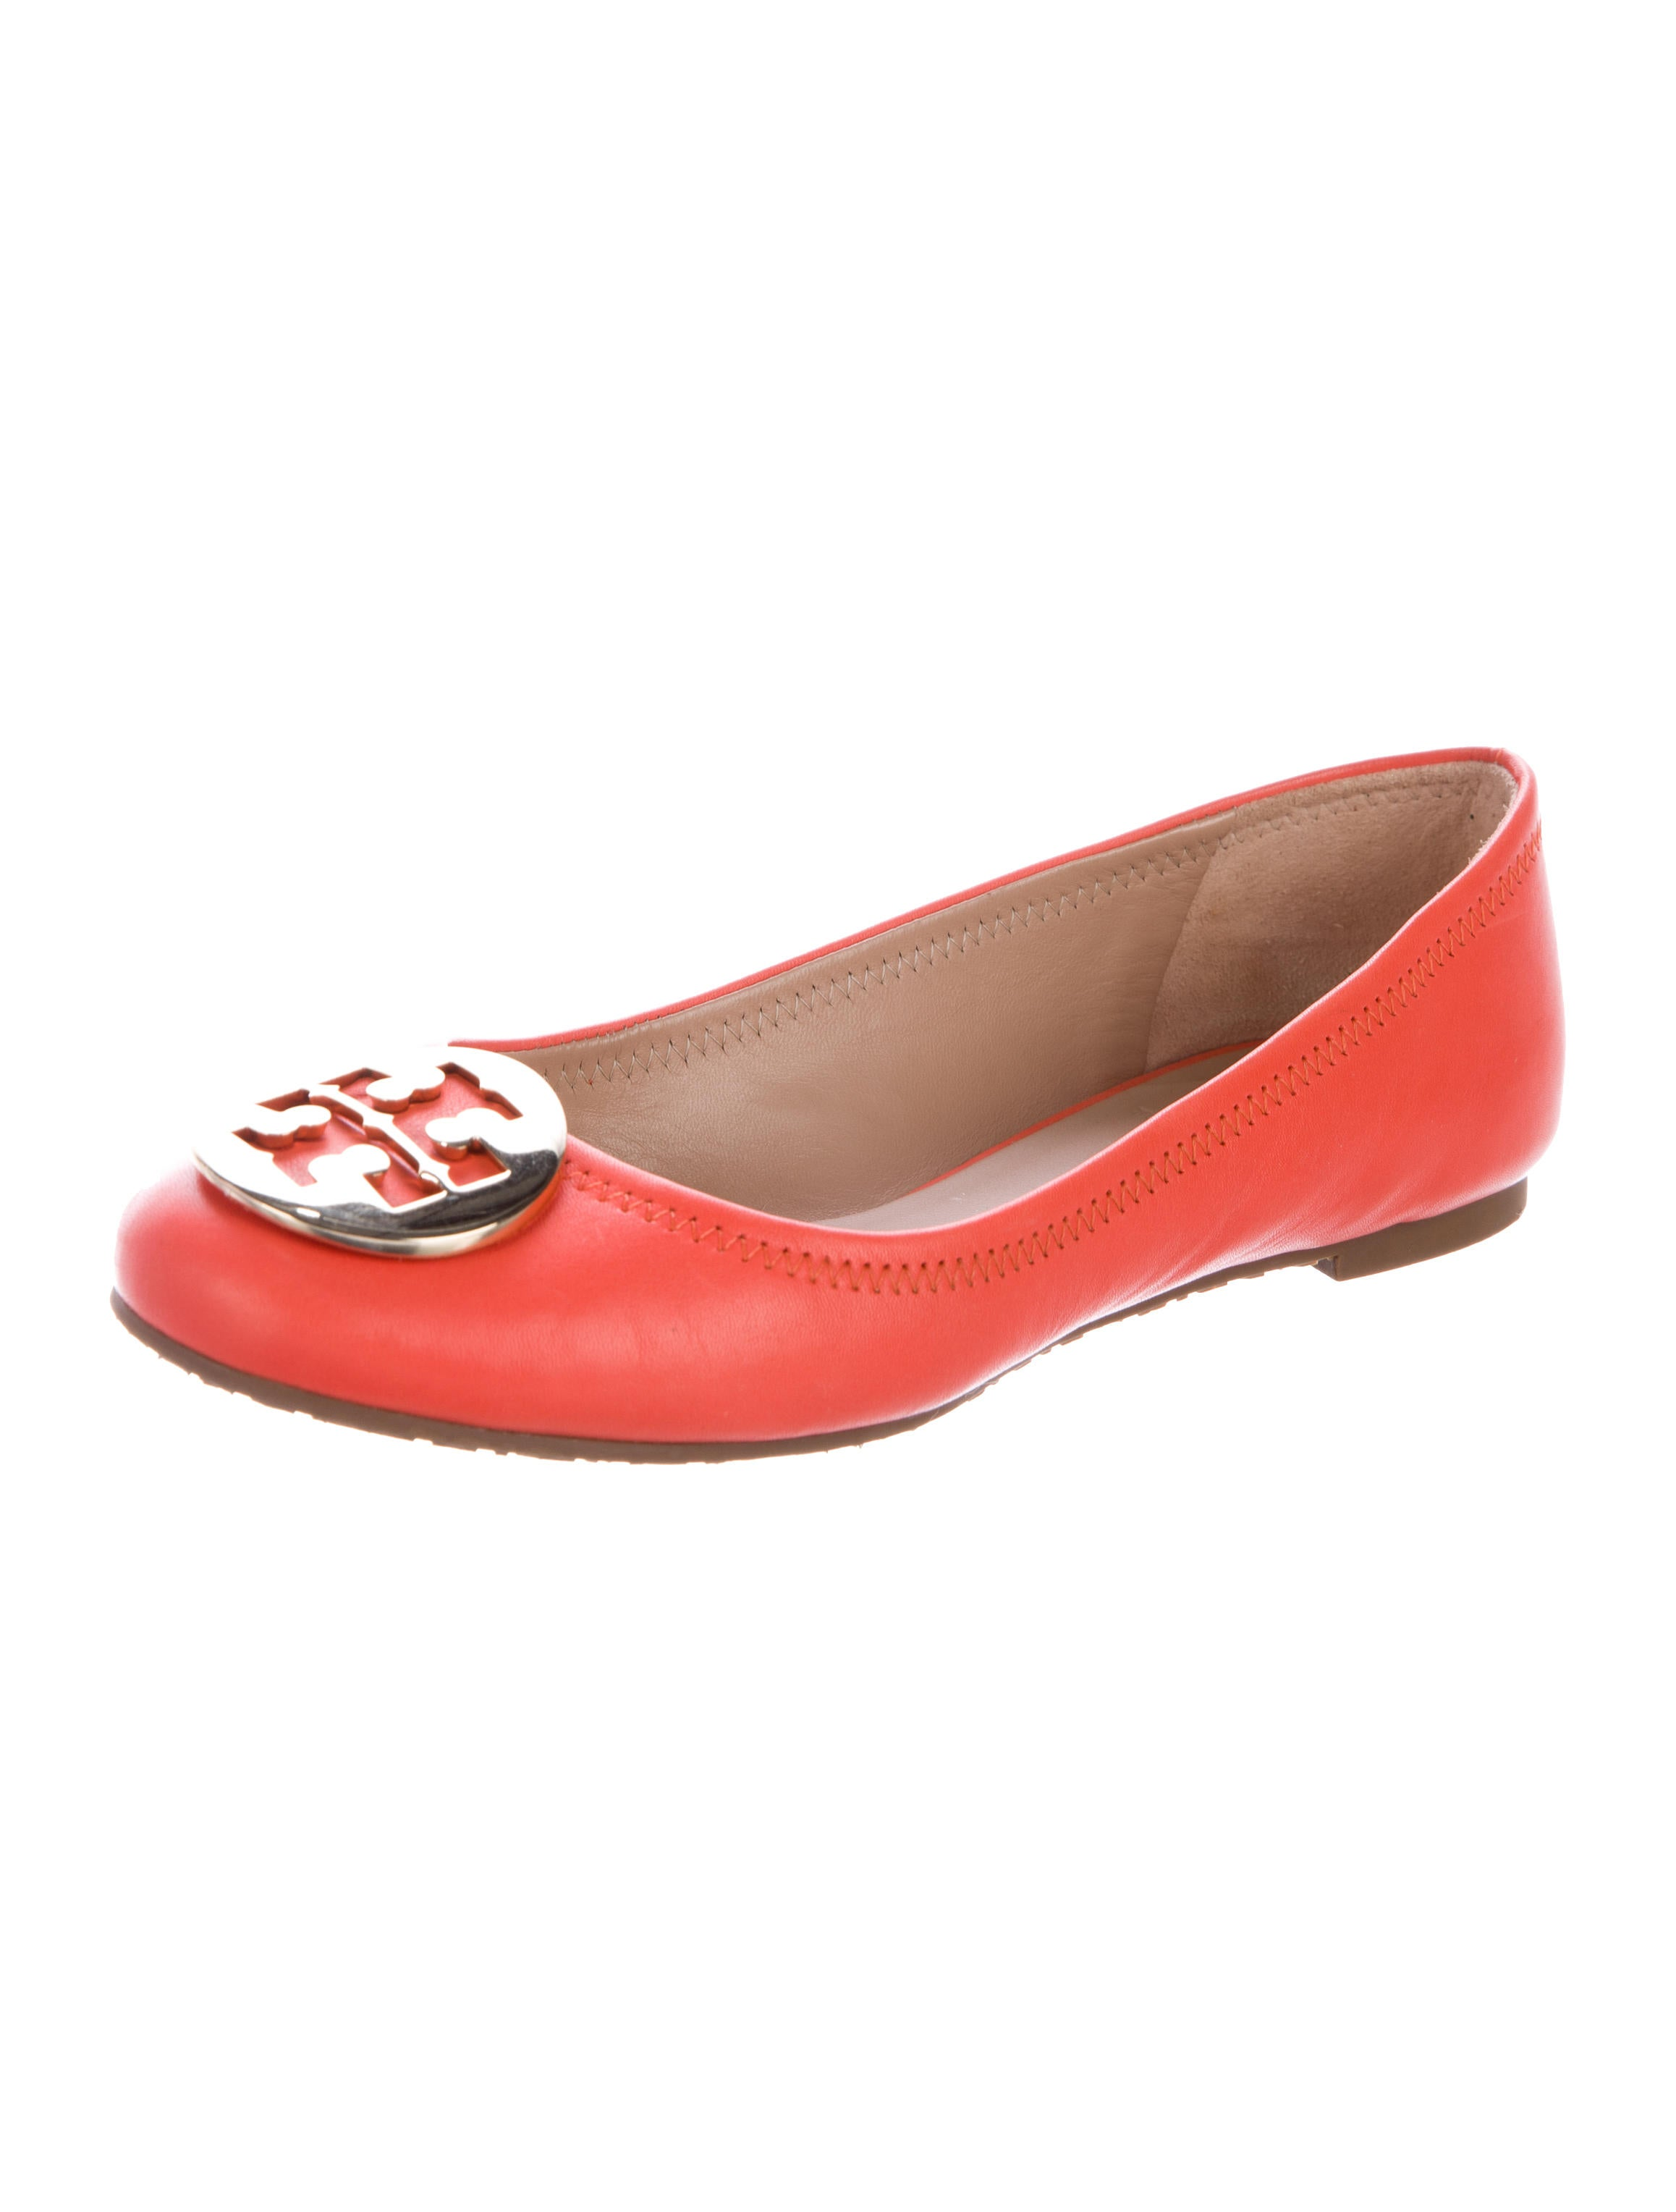 burch reva leather ballet flats shoes wto103303